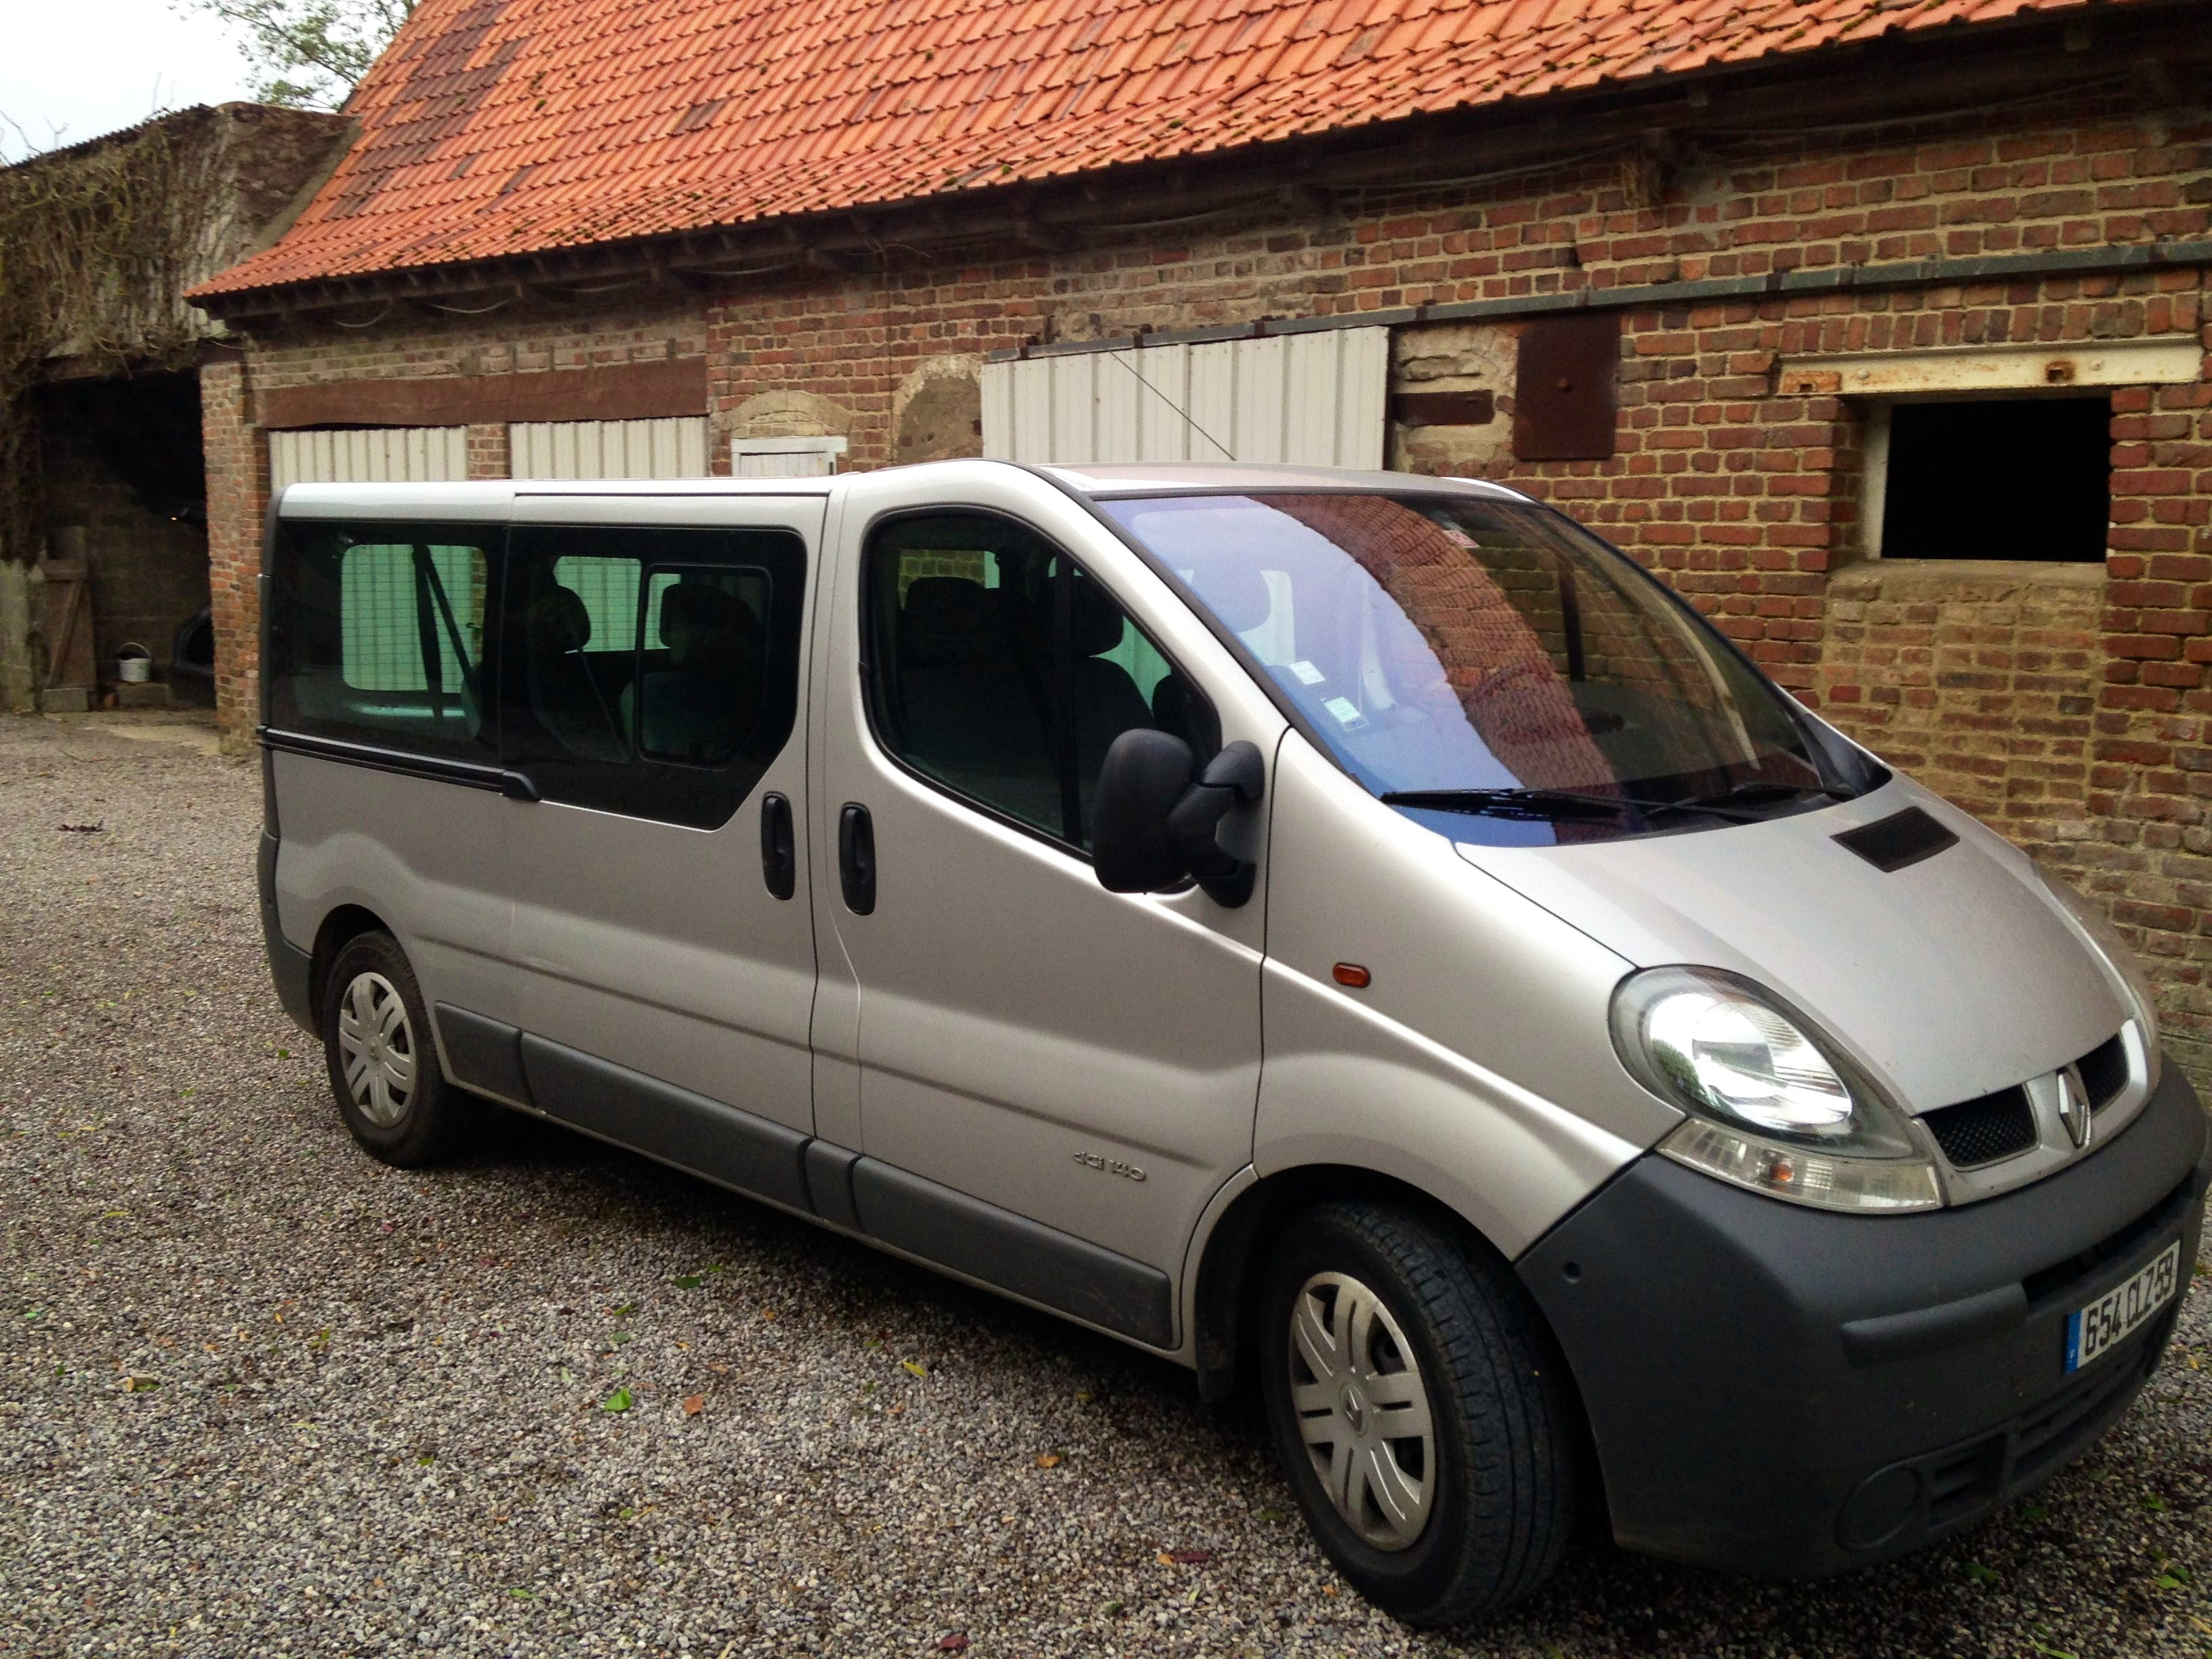 Renault trafic 9 places long, 2006, Diesel, 9 places et plus